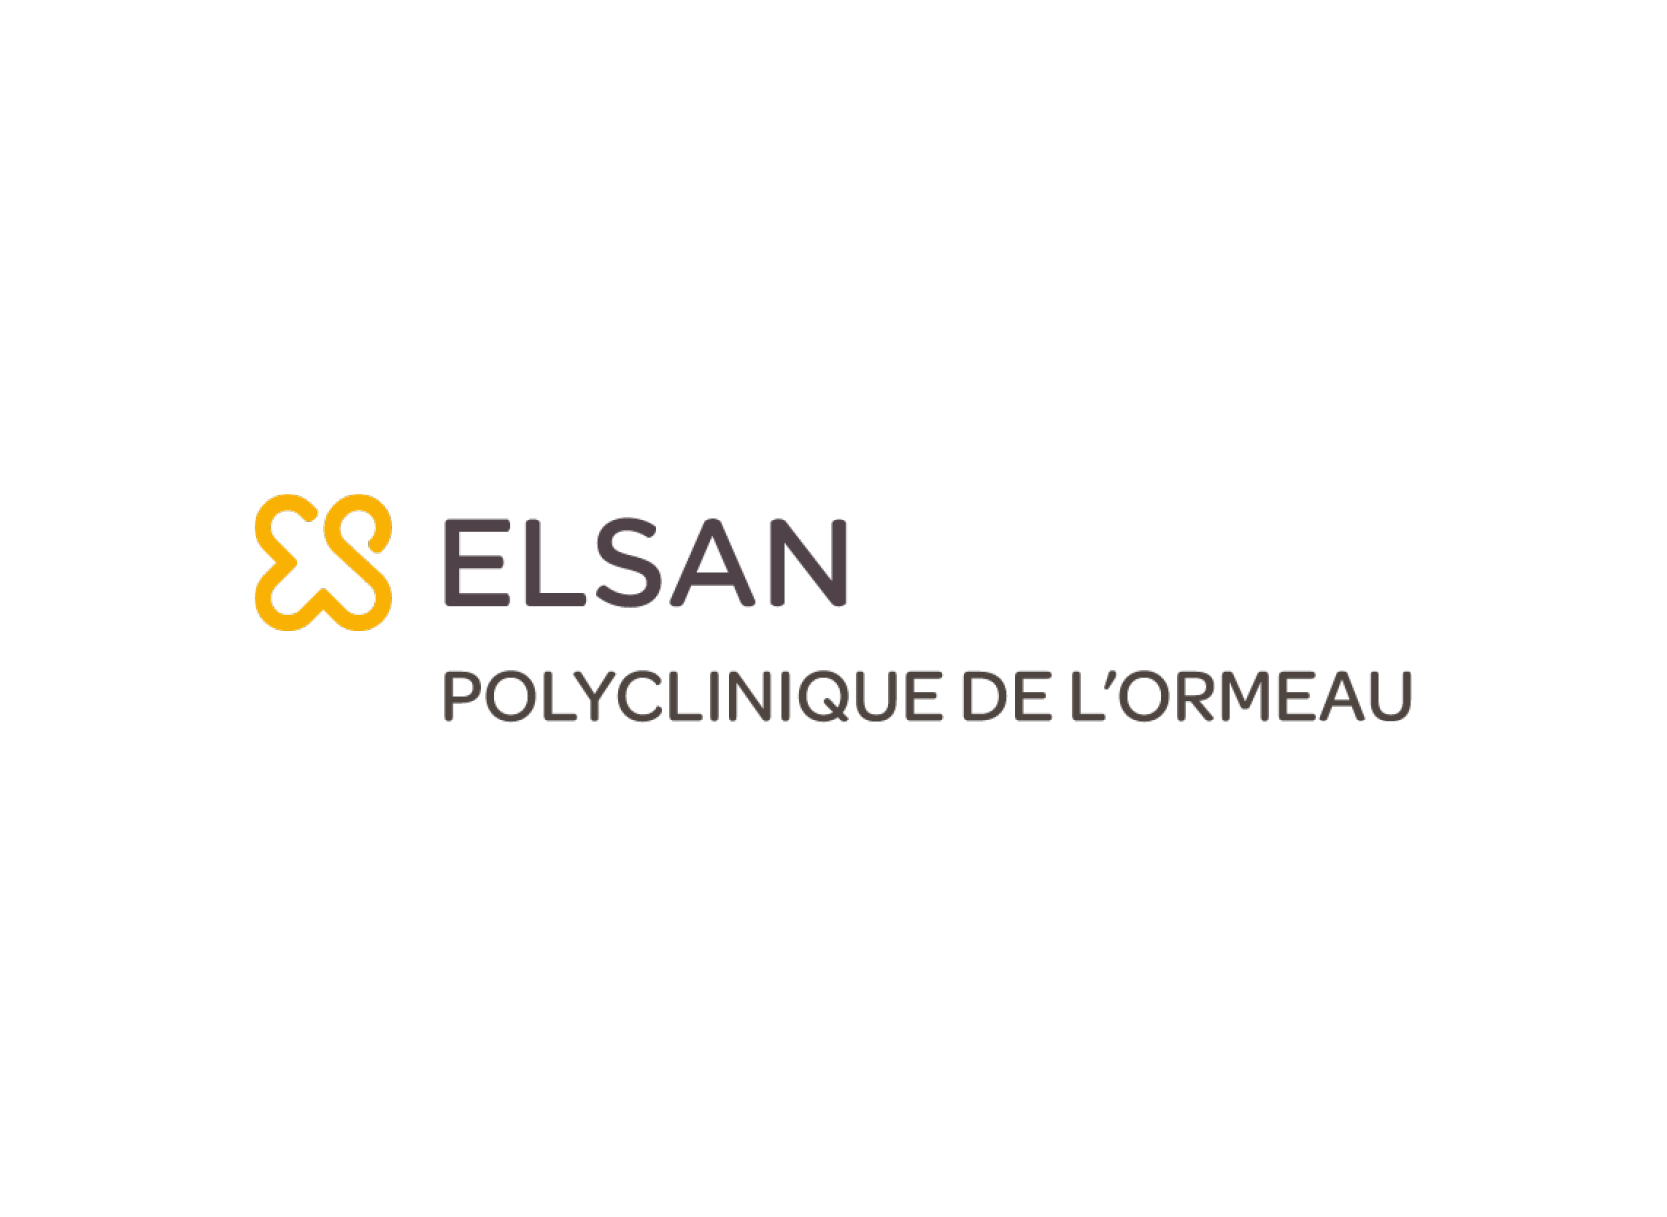 Logo Polyclinique de l'Ormeau - ELSAN